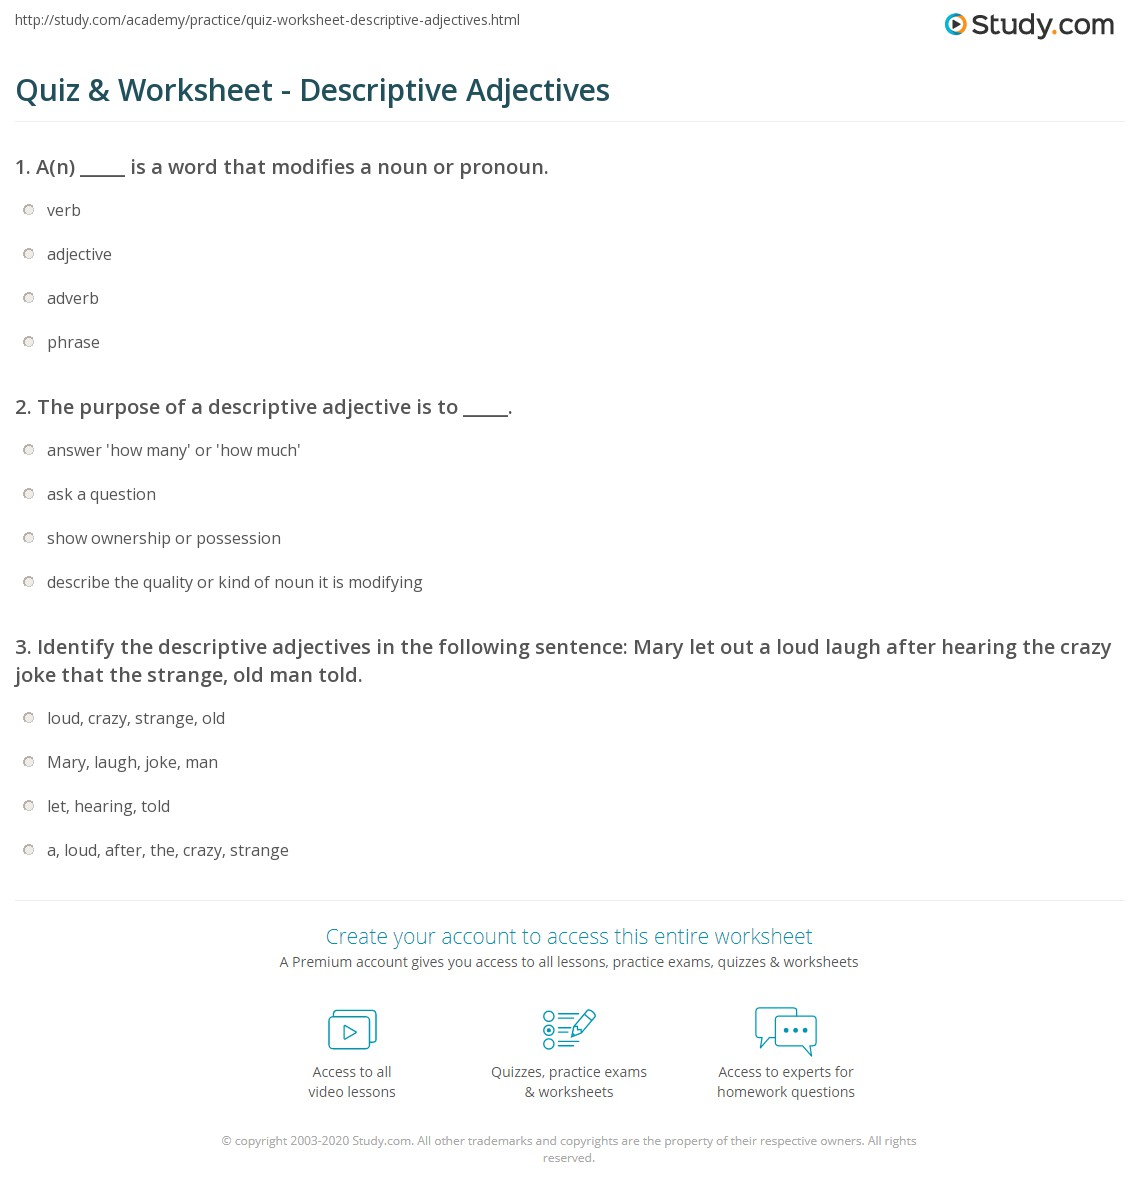 Quiz & Worksheet - Descriptive Adjectives | Study.com